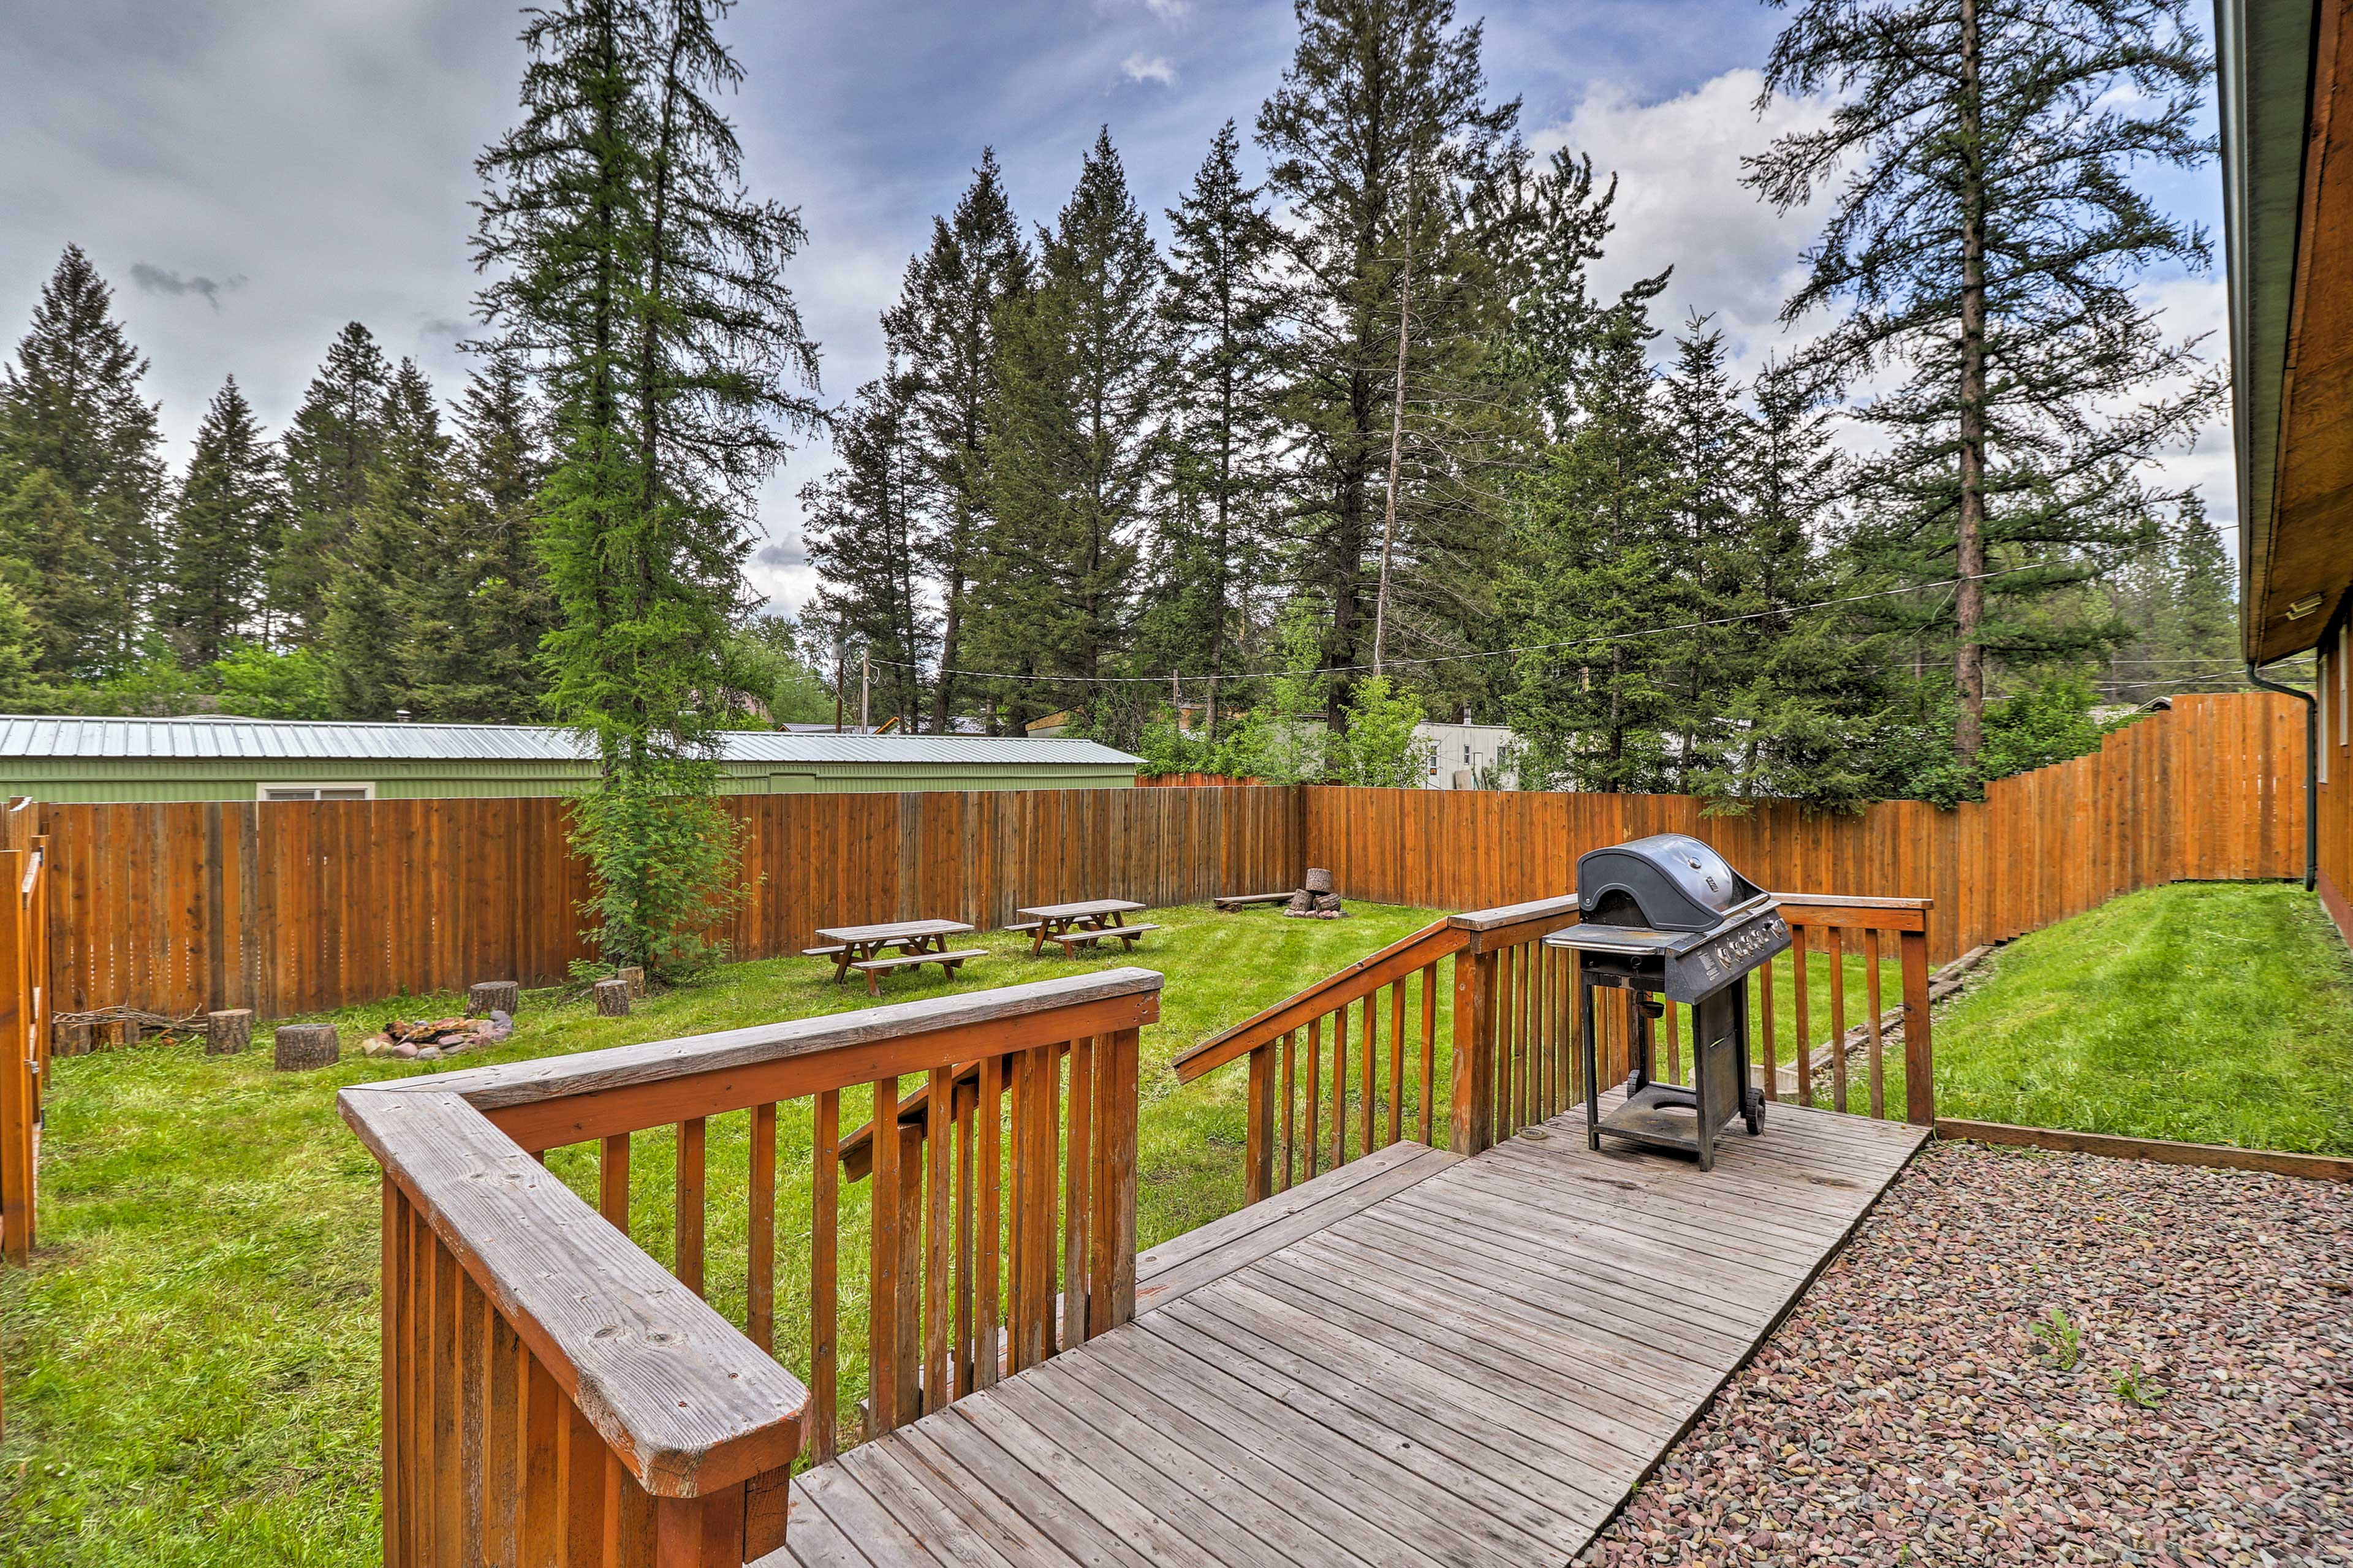 Enjoy afternoon barbecues while surrounded by nature!